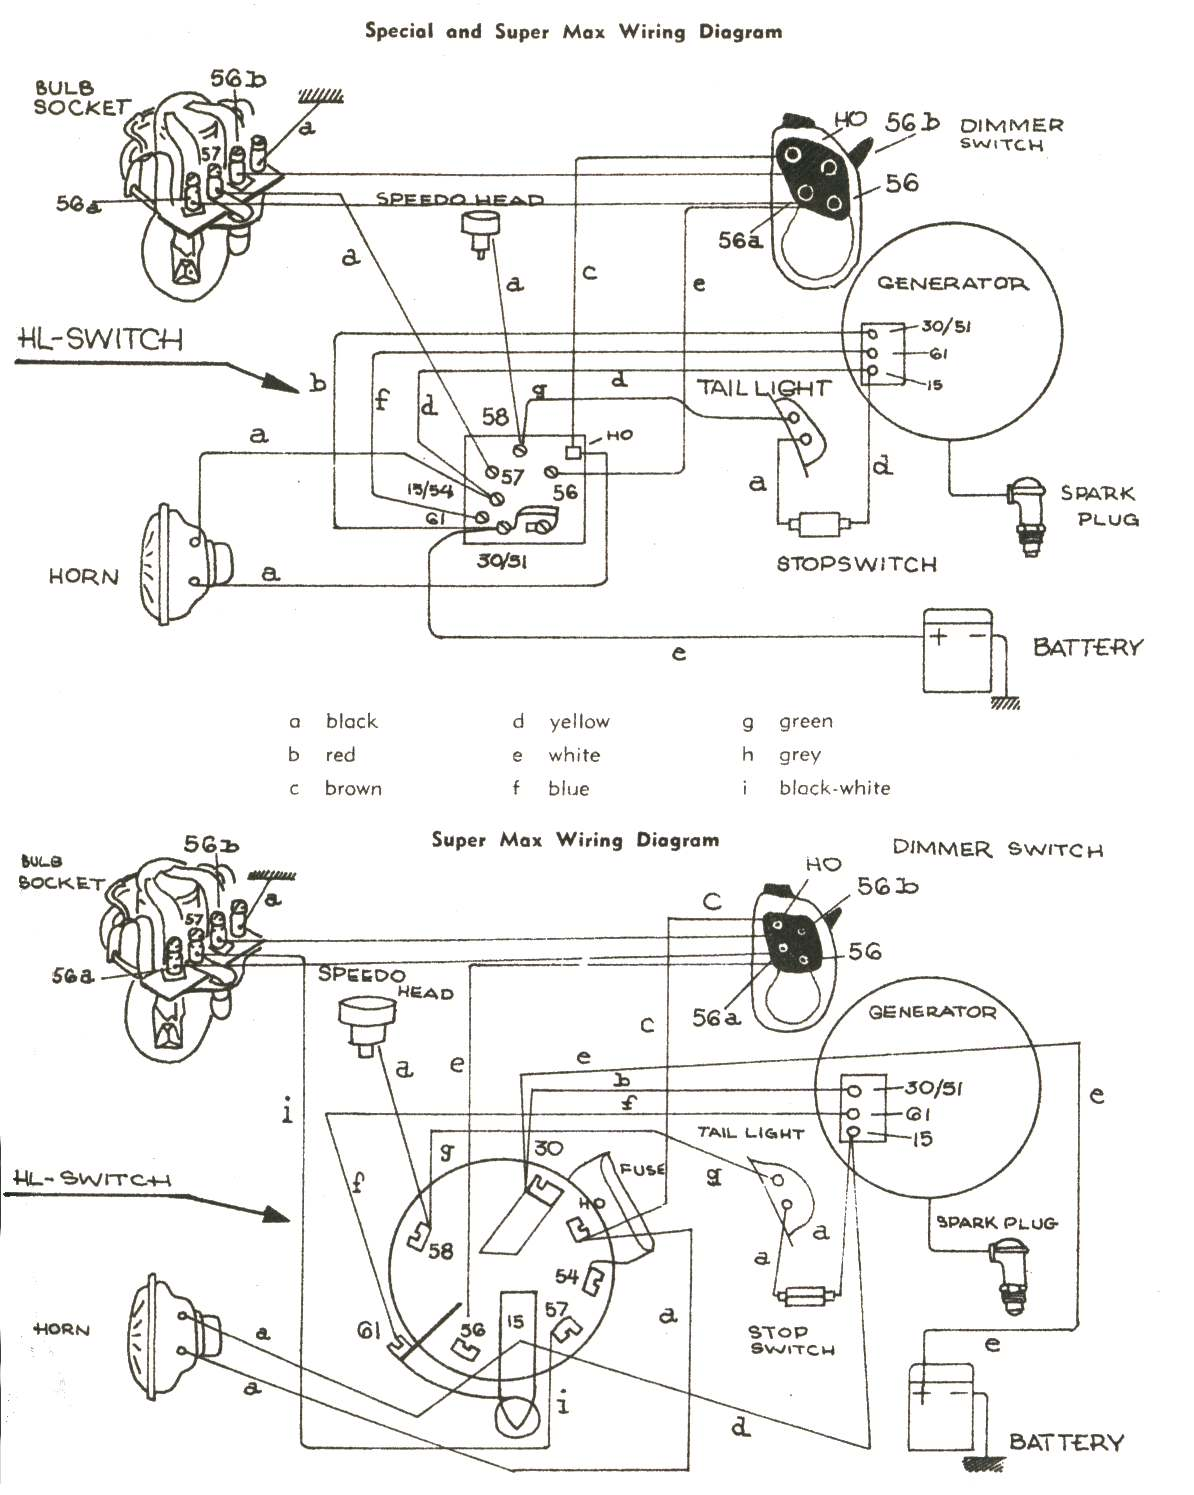 Fenwal Ignition Module Wiring Diagram 35 655500 001